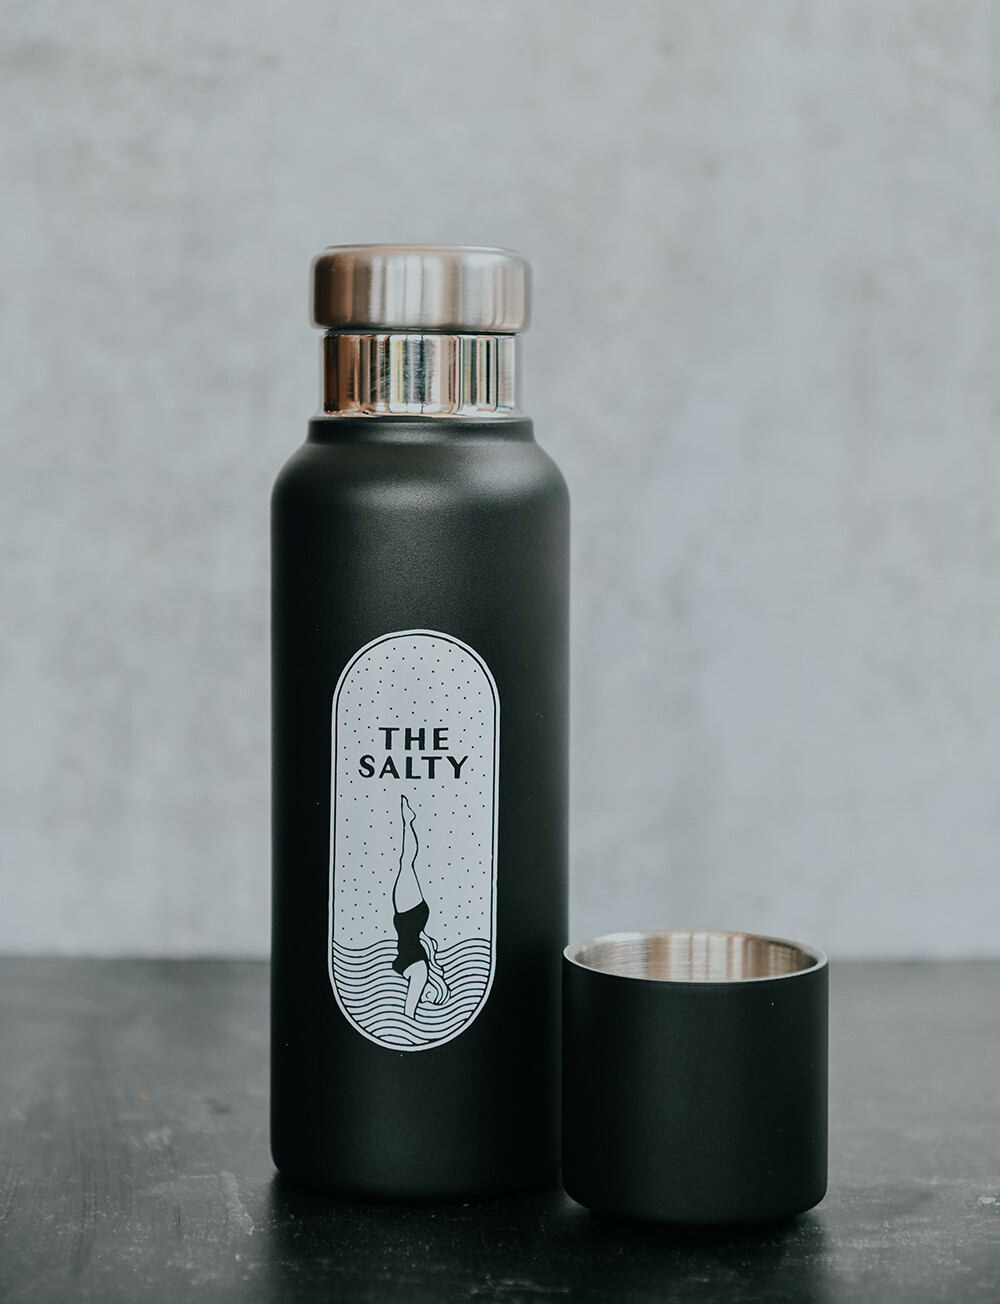 The Salty - Thermal Bottle